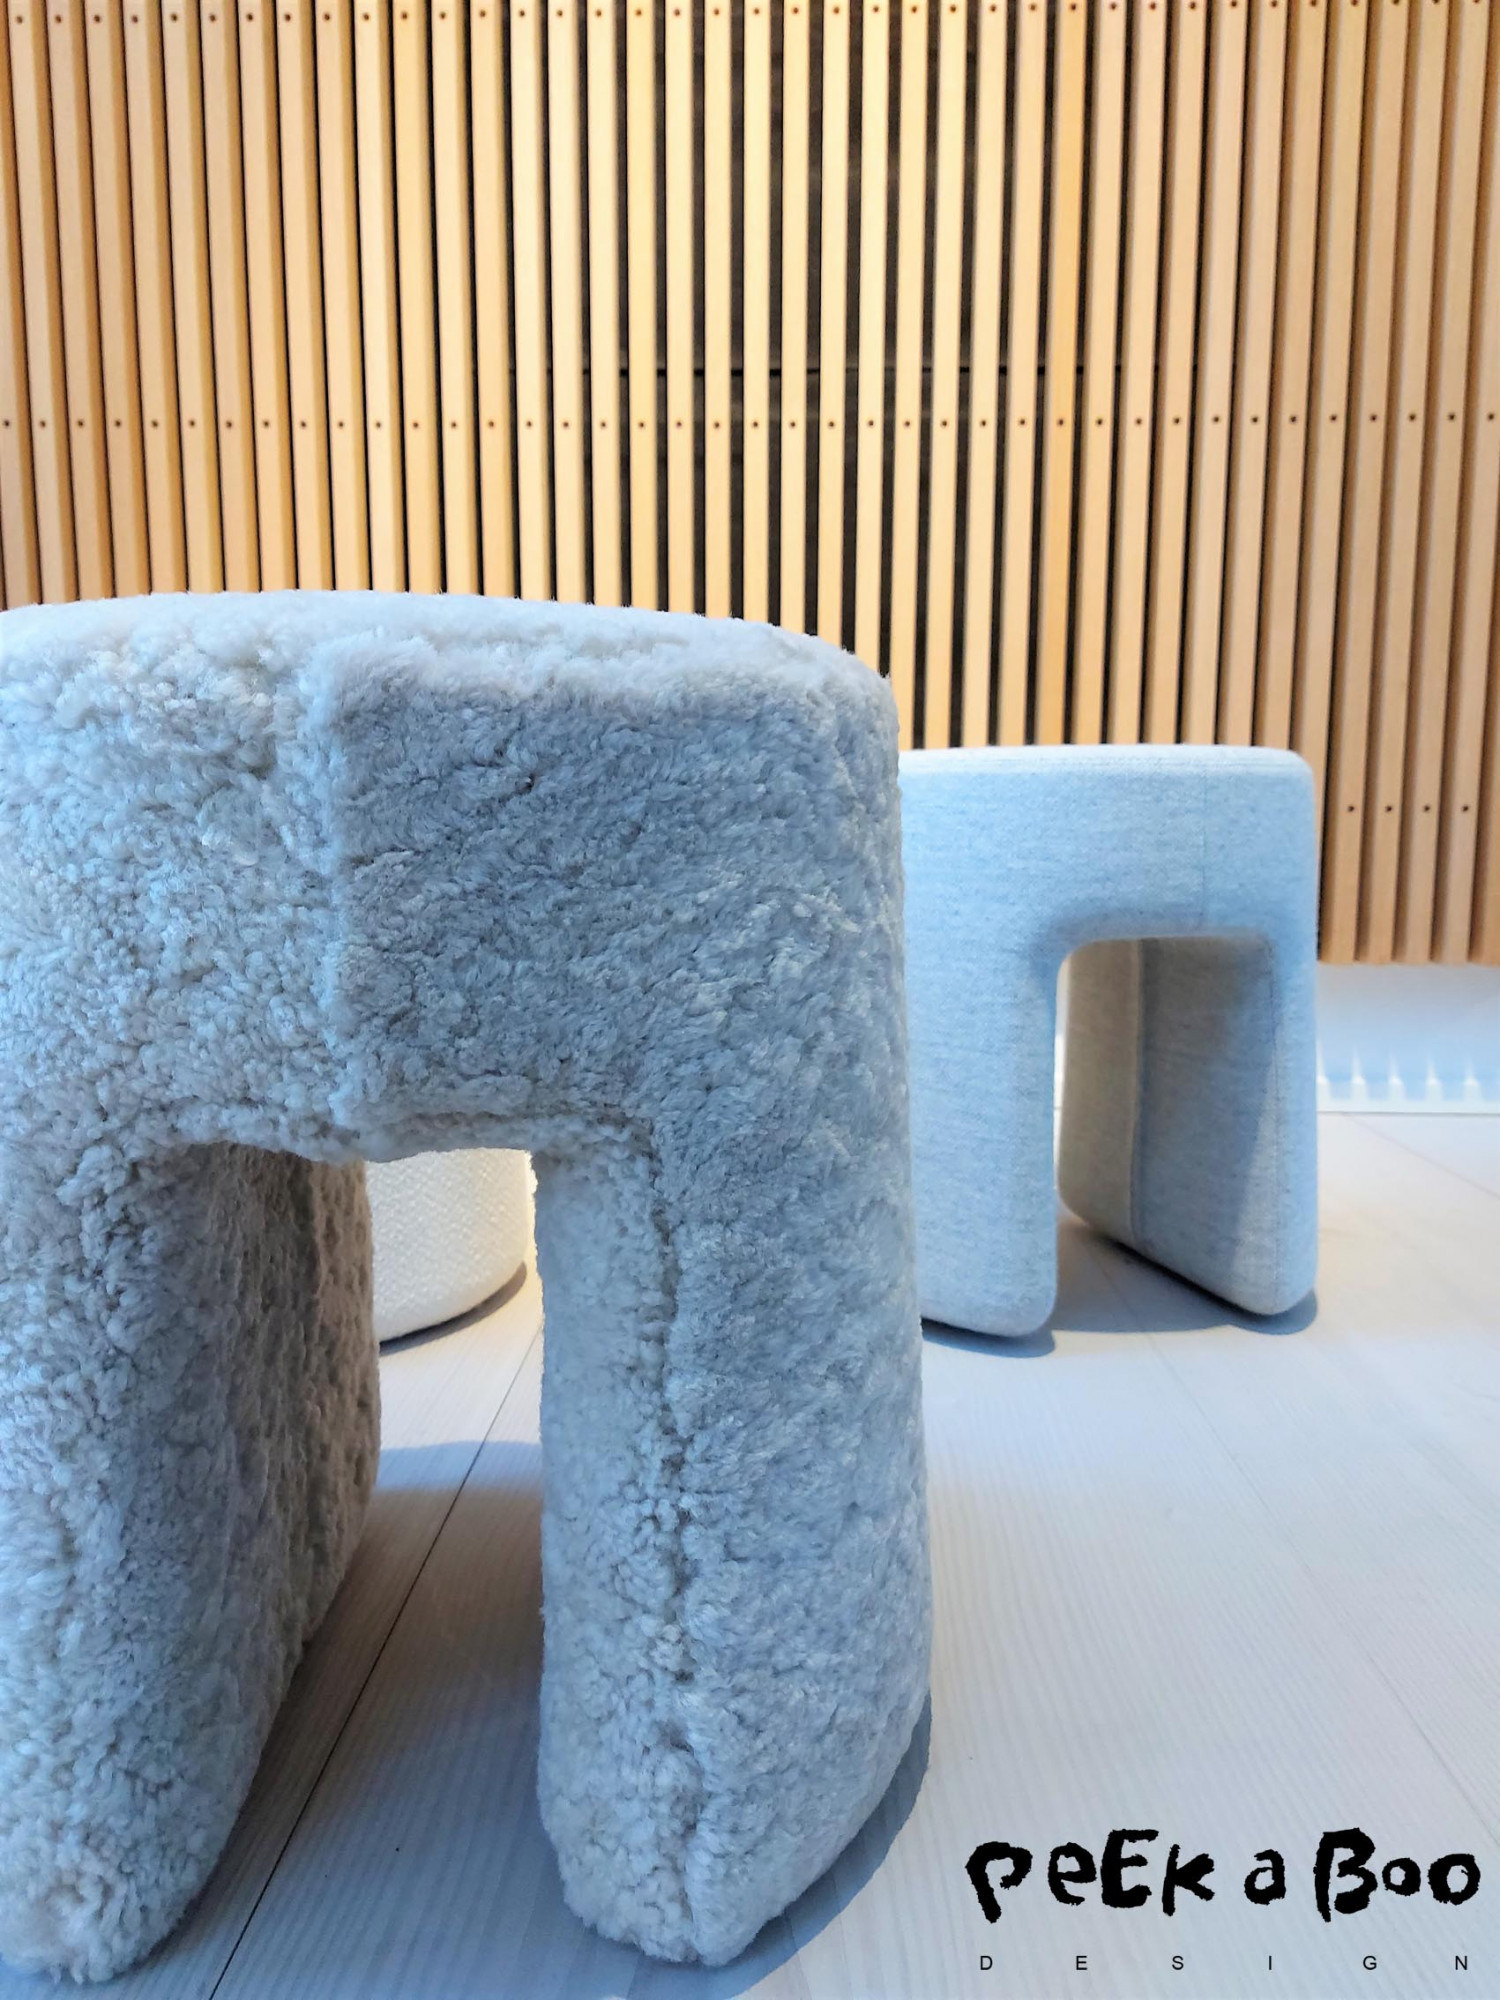 My favorite design in sheepskin is this stool called sequoia pouf designed by Space copenhagen for Fredericia Furniture.